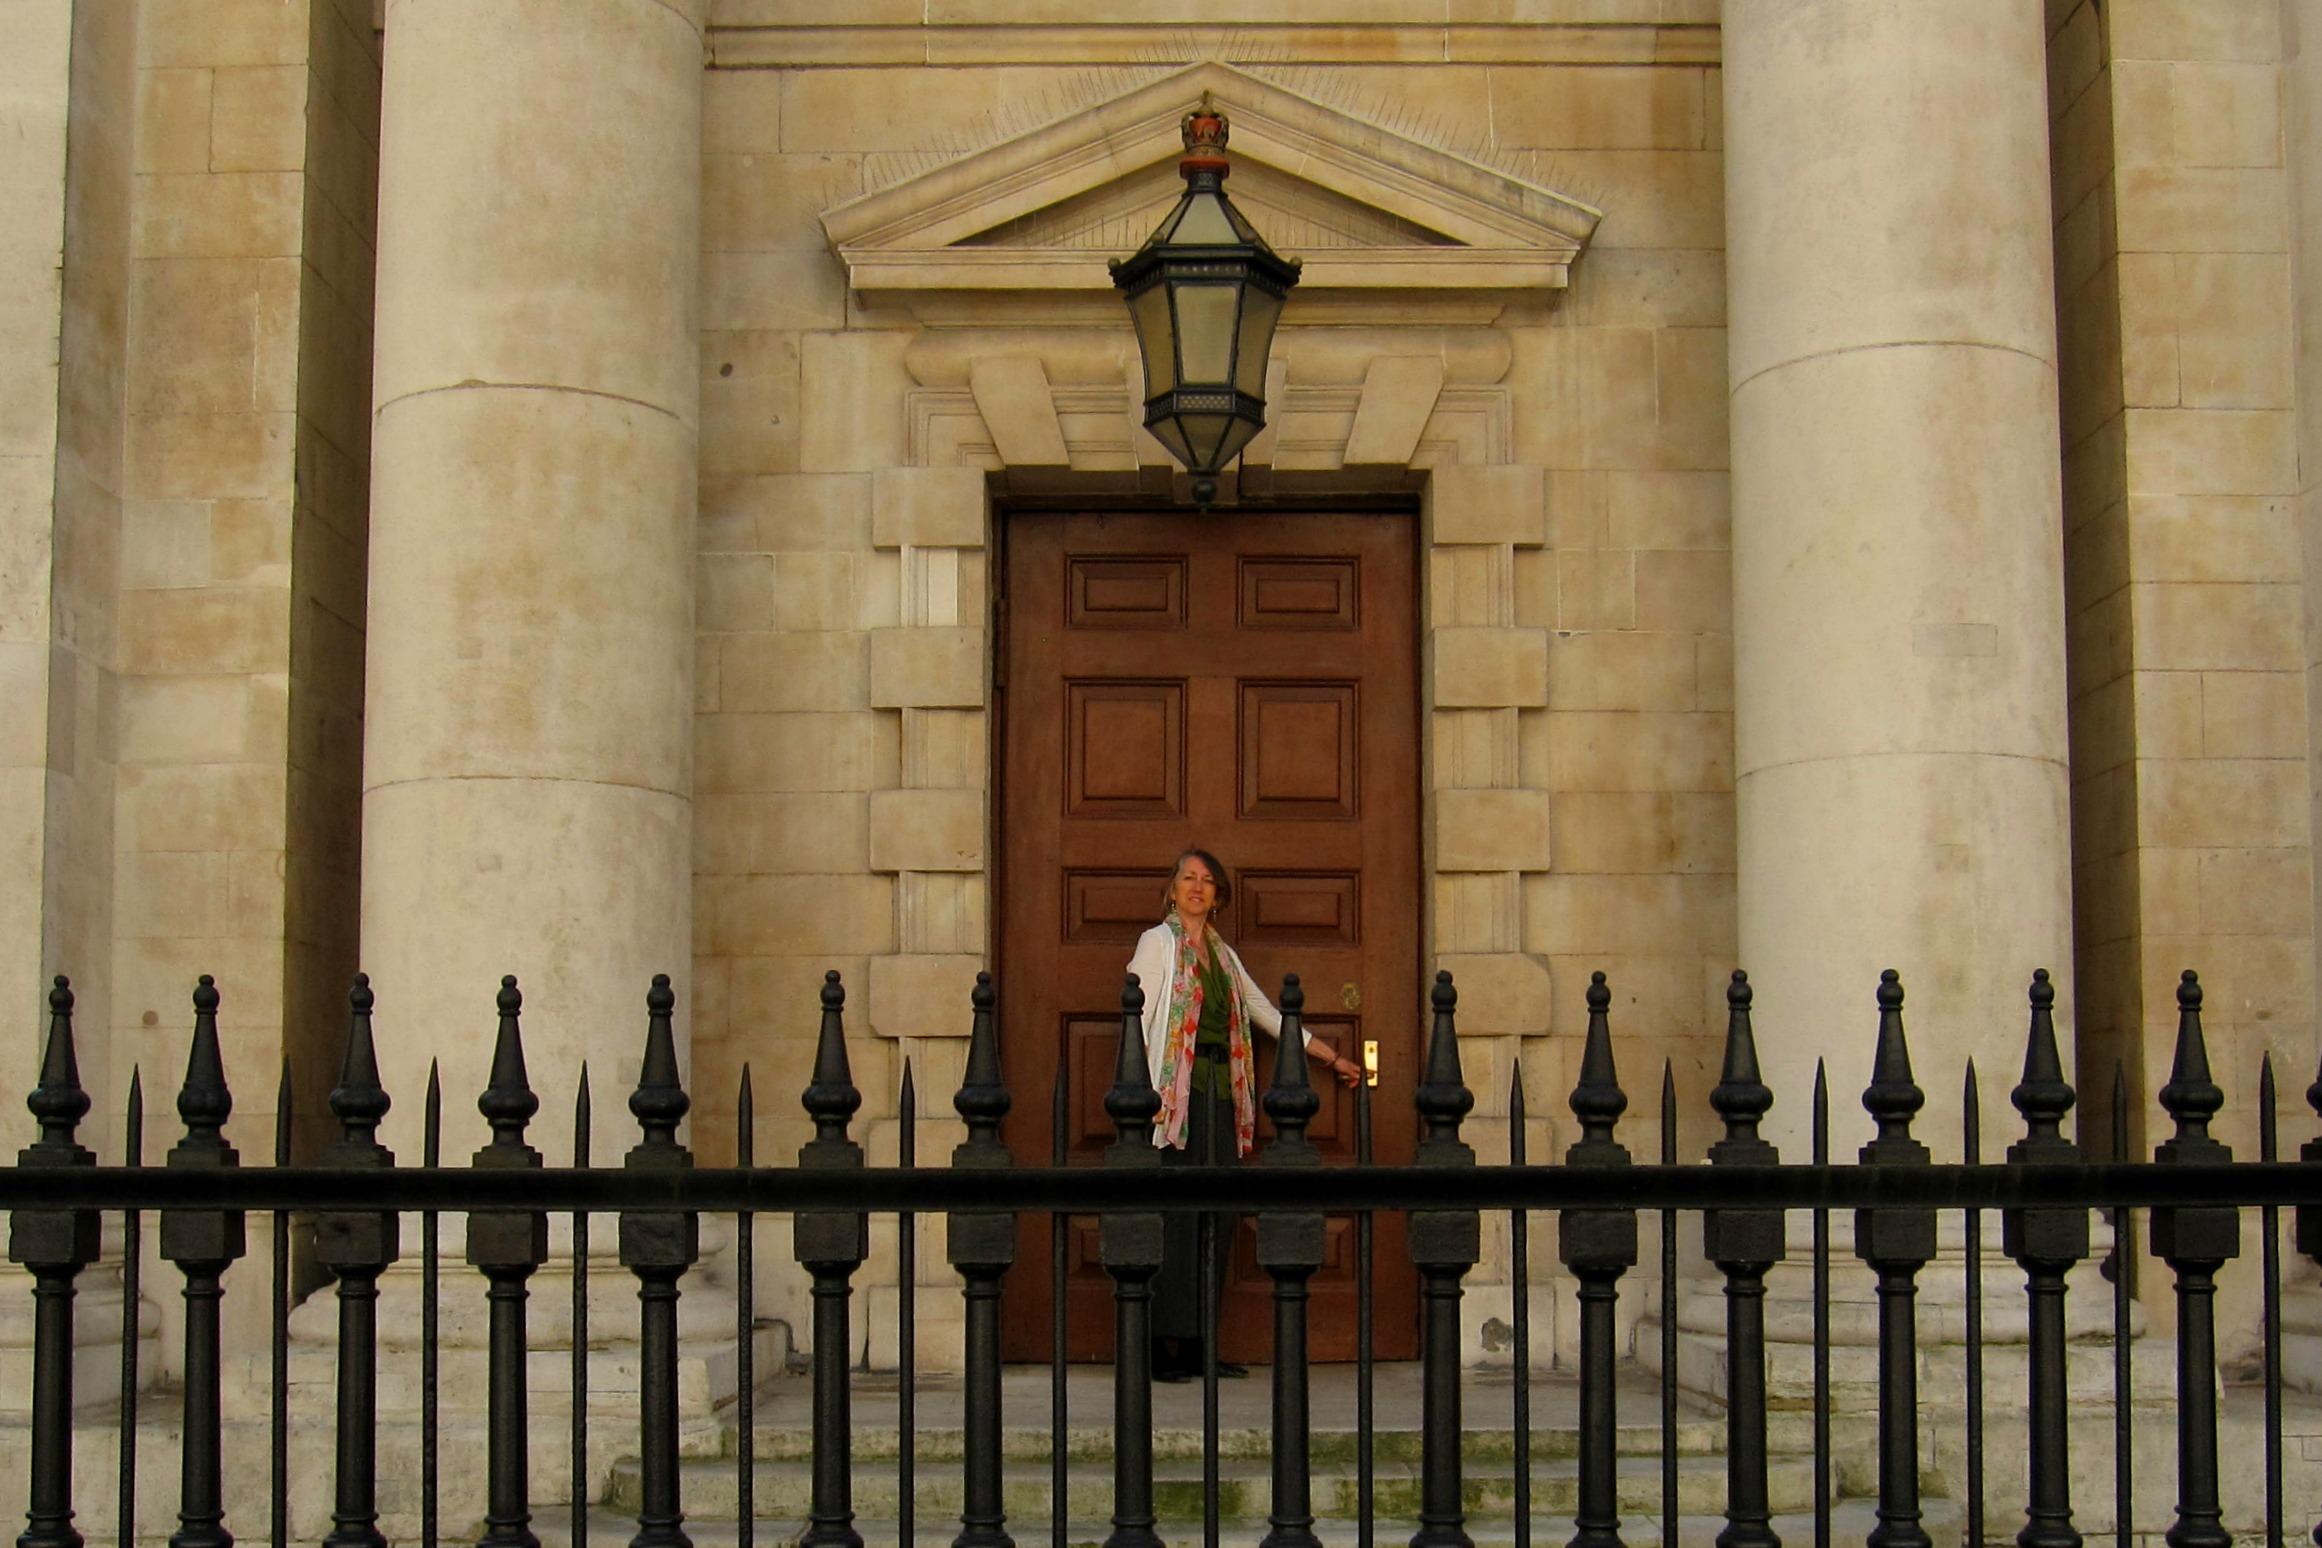 St. Martin-in-the-Fields, London, England